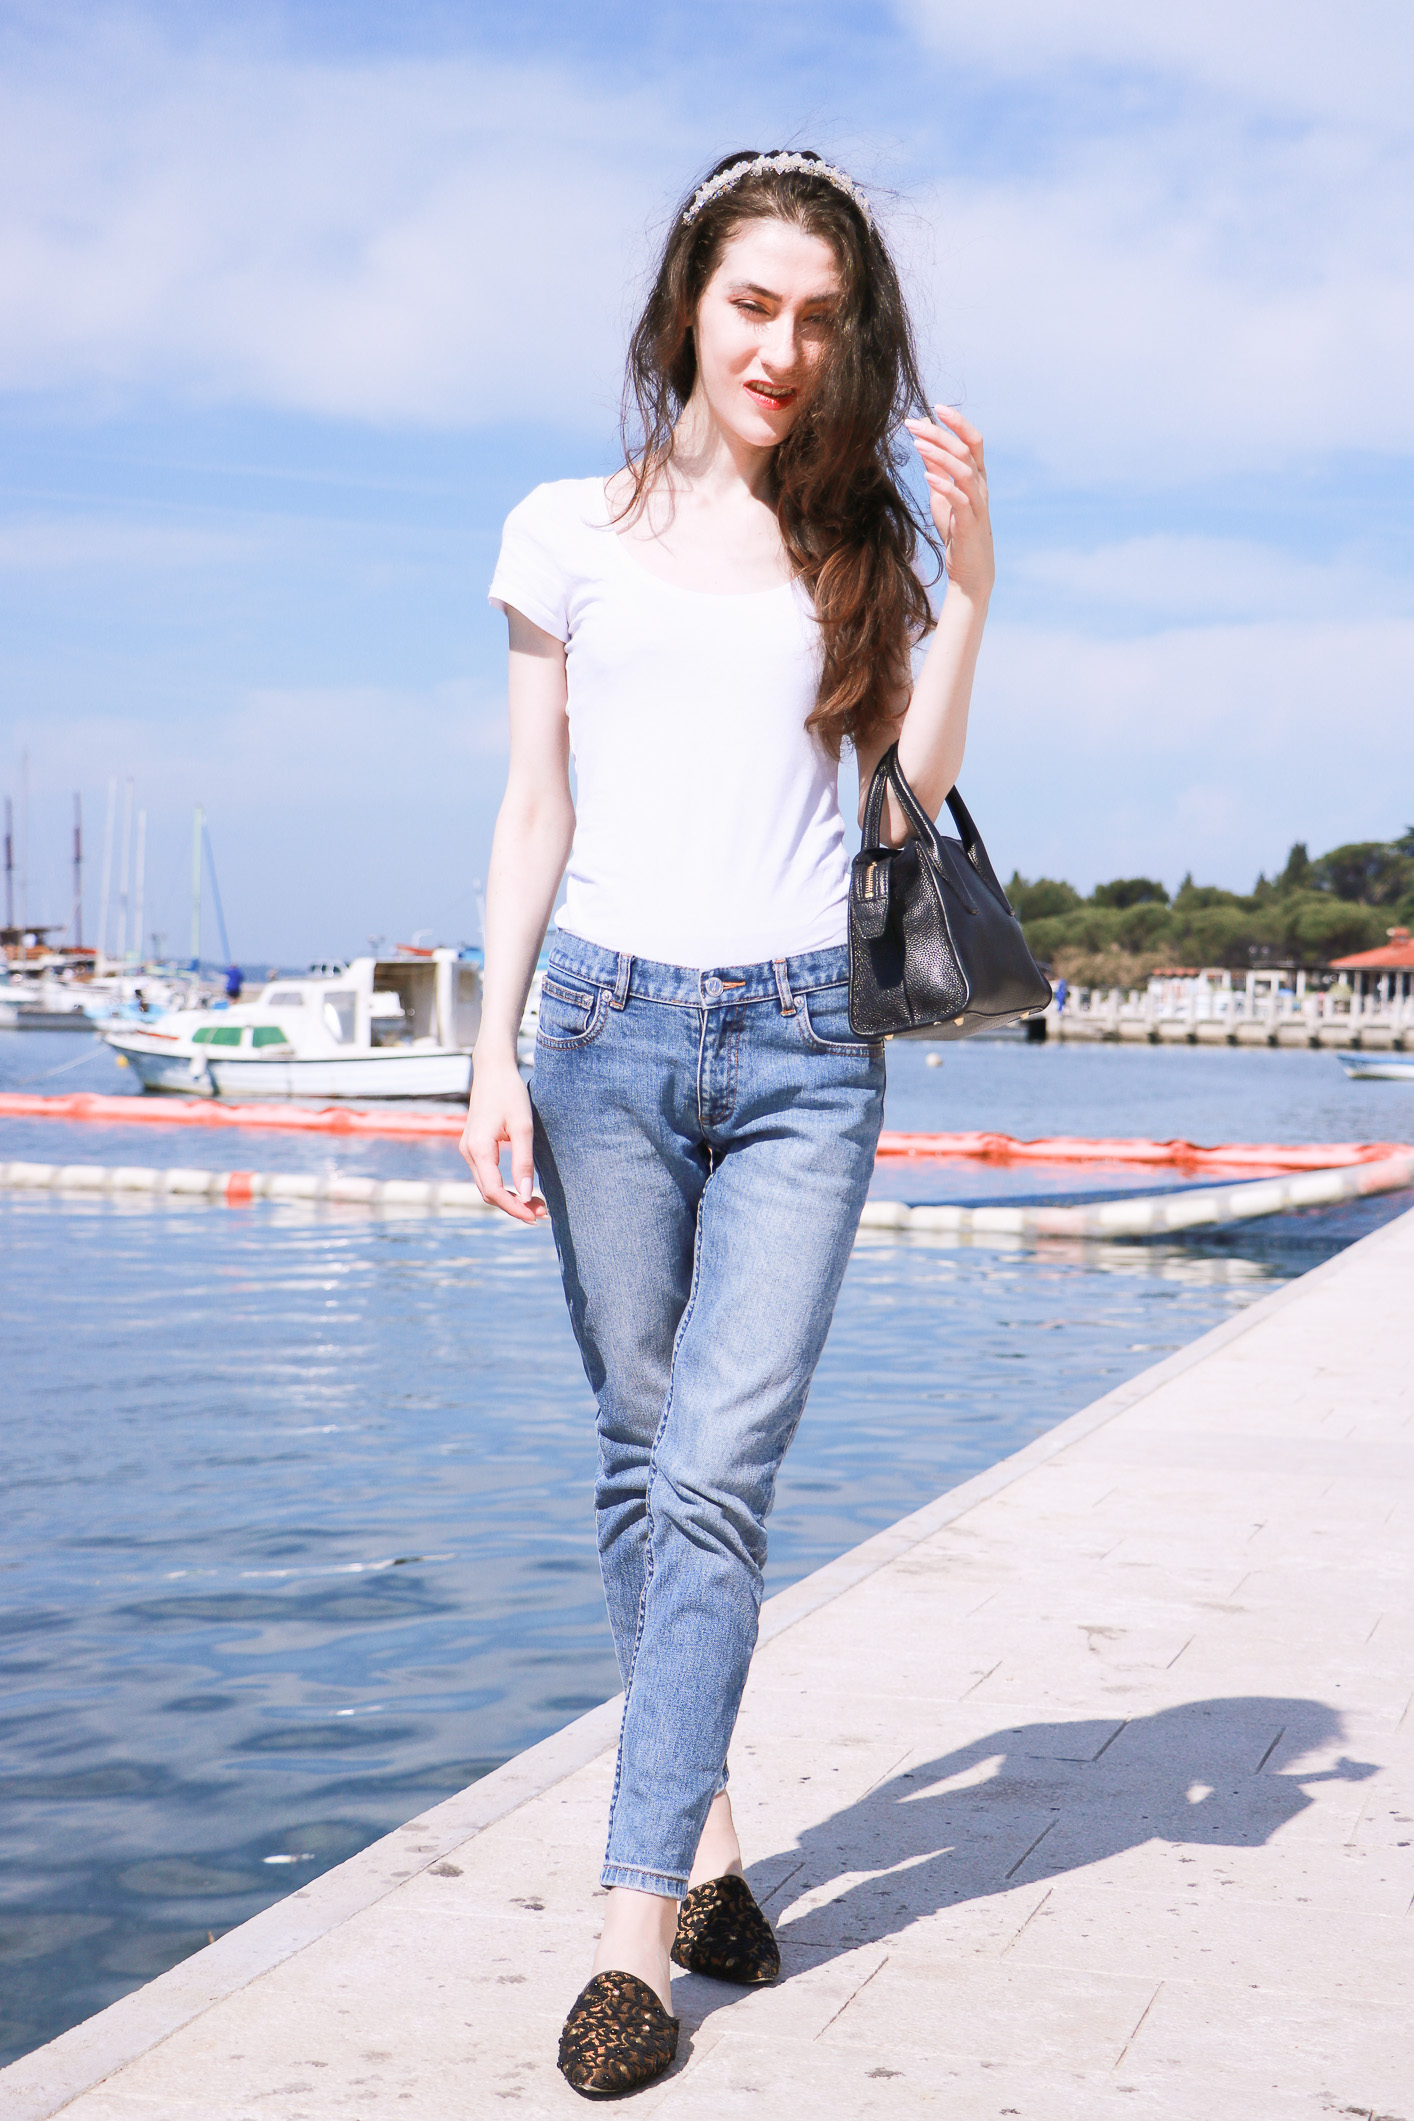 Fashion blogger Veronika Lipar of Brunette From Wall Street sharing 5 accessories that makes us look elegant in white tee shirt and light blue mom jeans while by the Adriatic sea